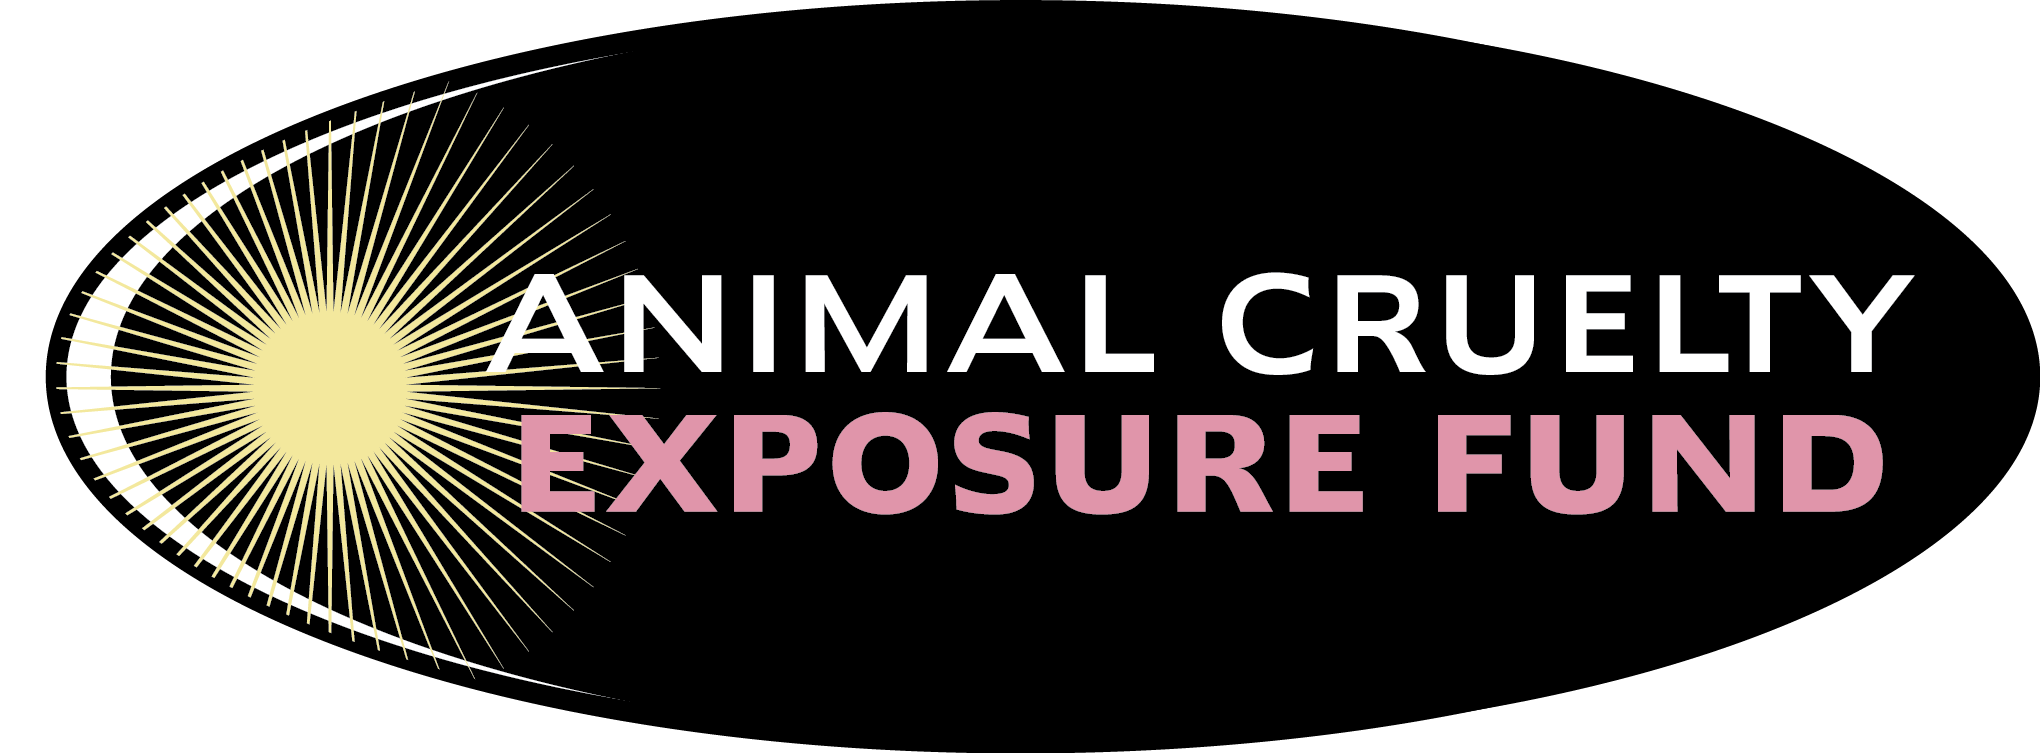 Animal Cruelty Exposure Fund